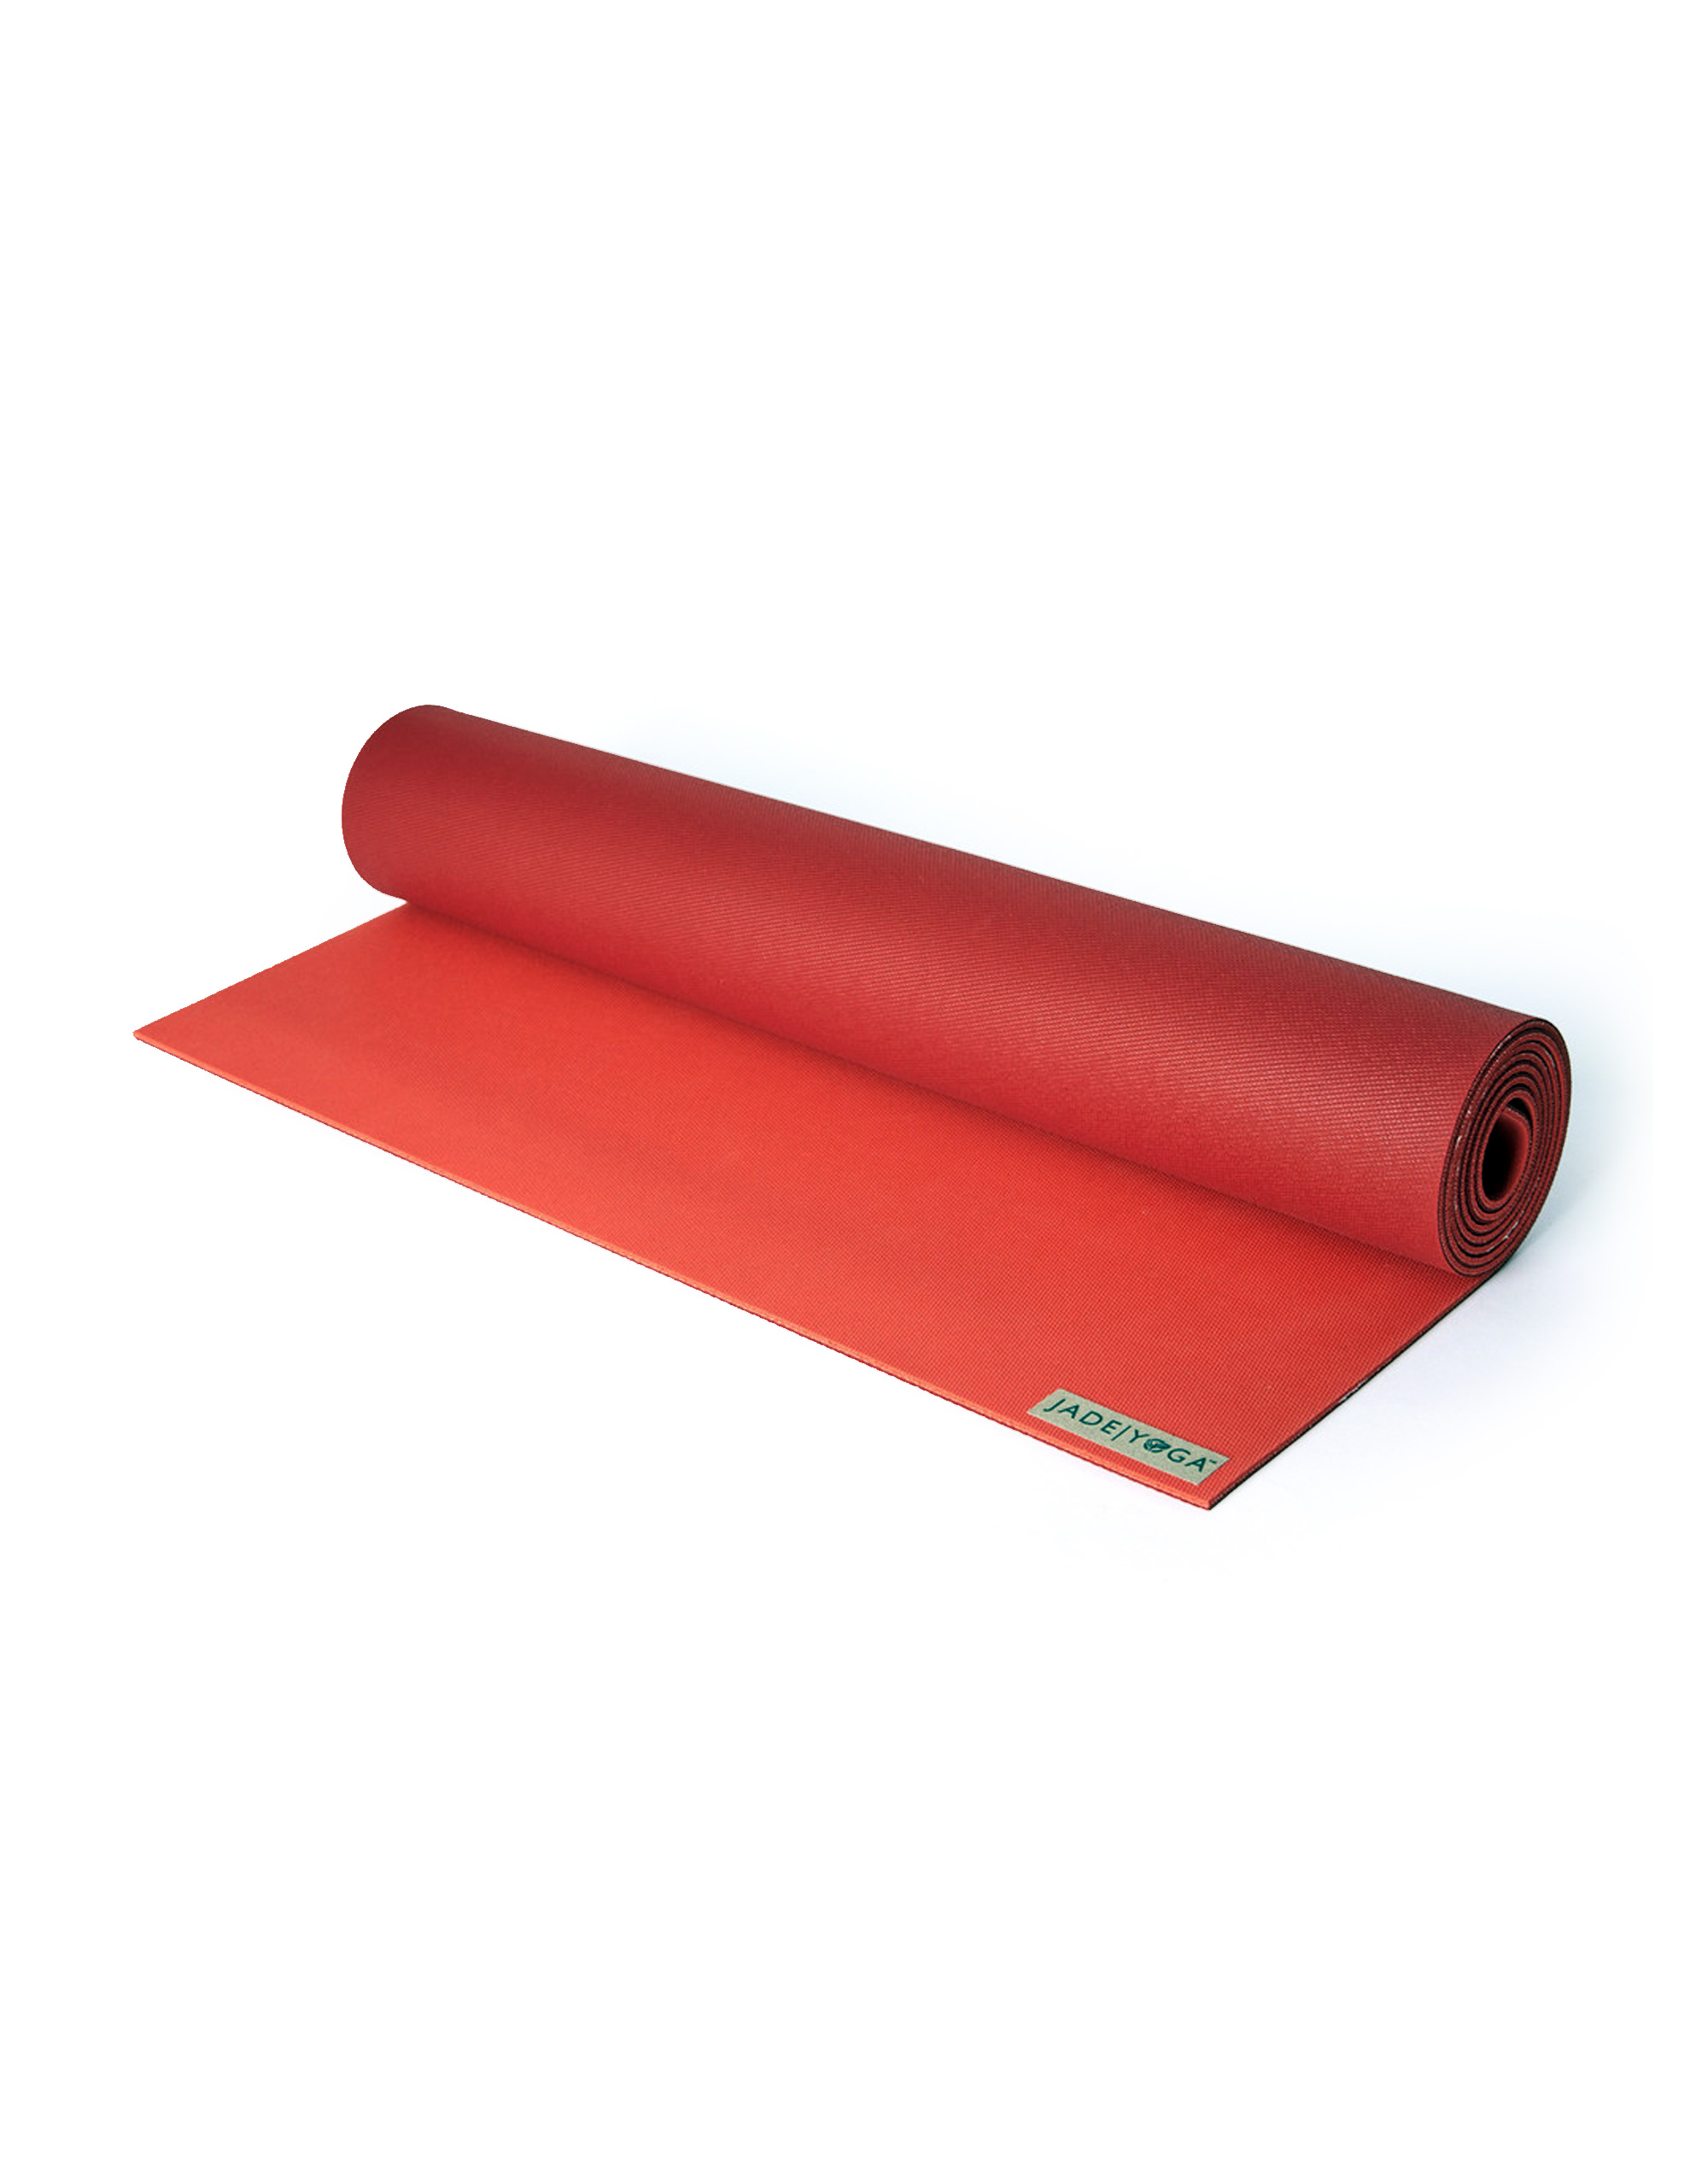 slip yoga mat friendly harmony professional mats wide non eco exercise daway tpe workout pin thick jade